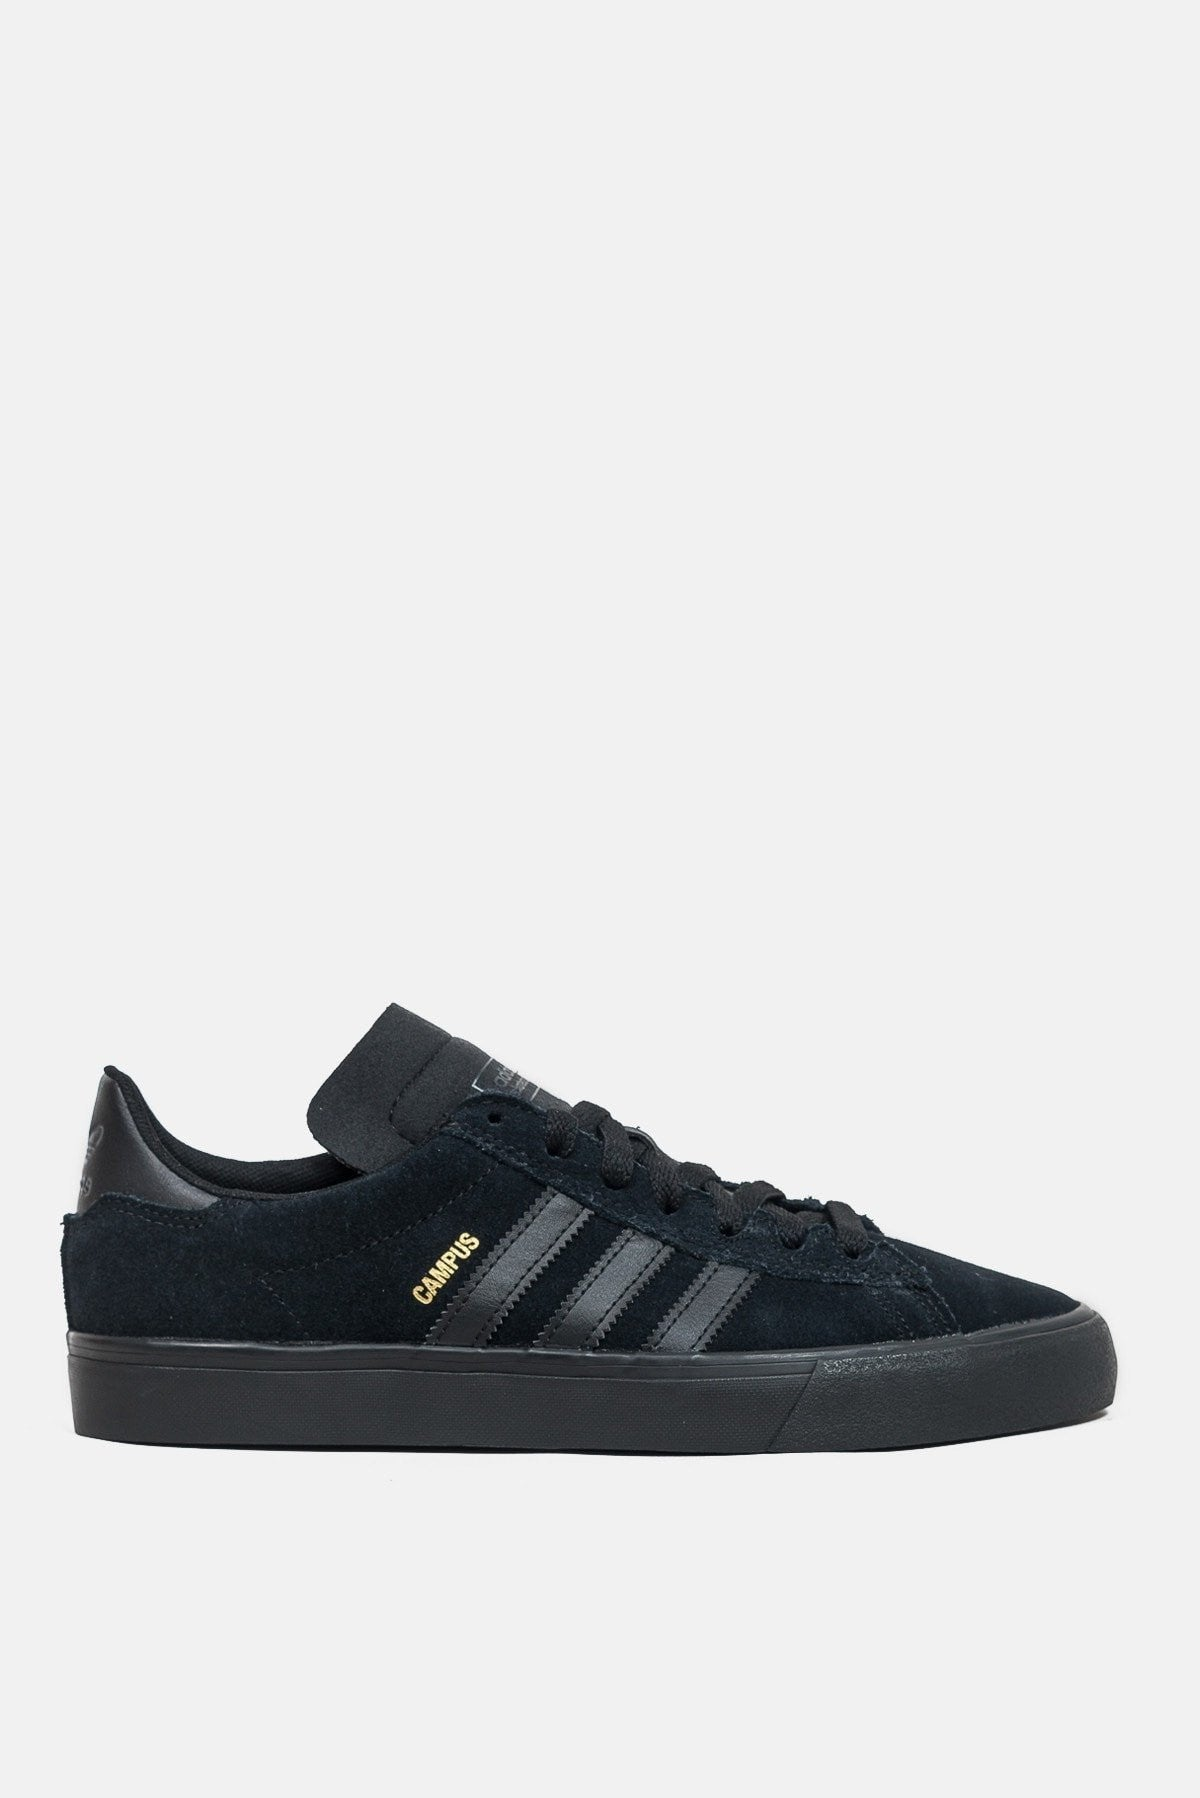 fc986ed599c18e Adidas Campus Vulc II Shoes available from Priory